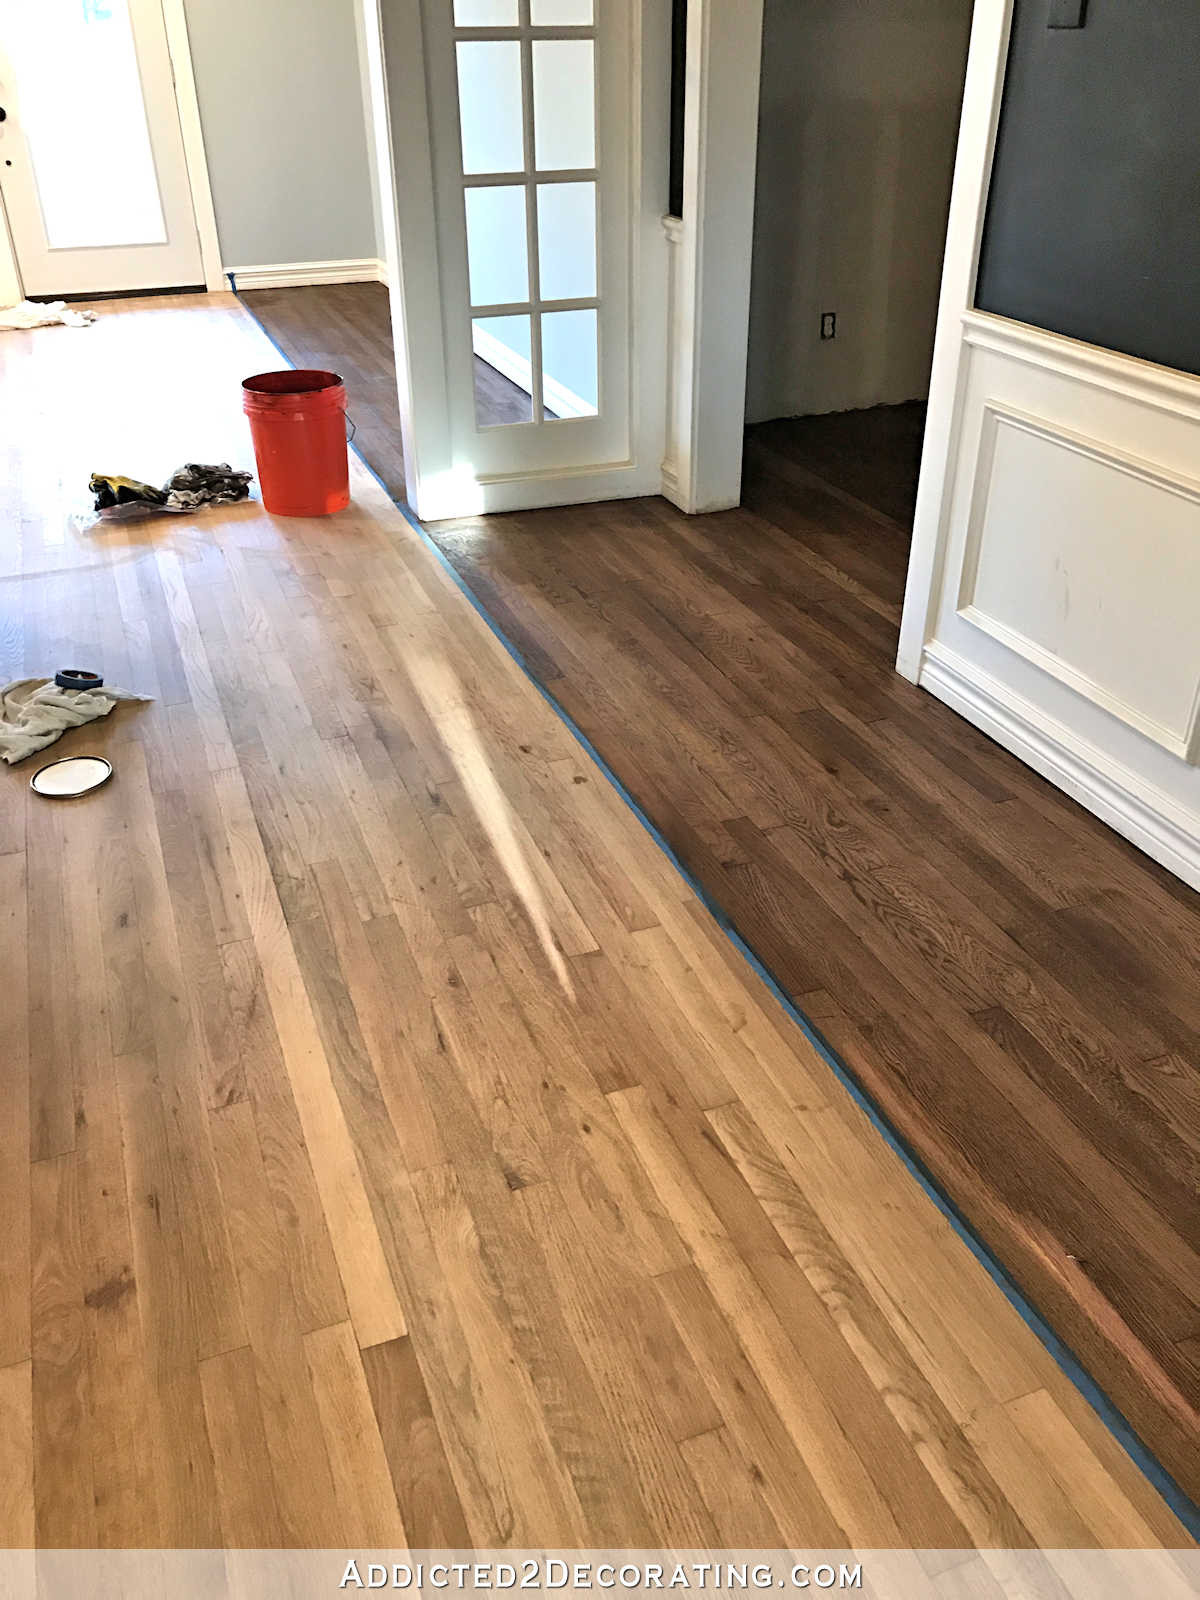 dark walnut hardwood floor stain of adventures in staining my red oak hardwood floors products process for staining red oak hardwood floors 6 stain on partial floor in entryway and music room